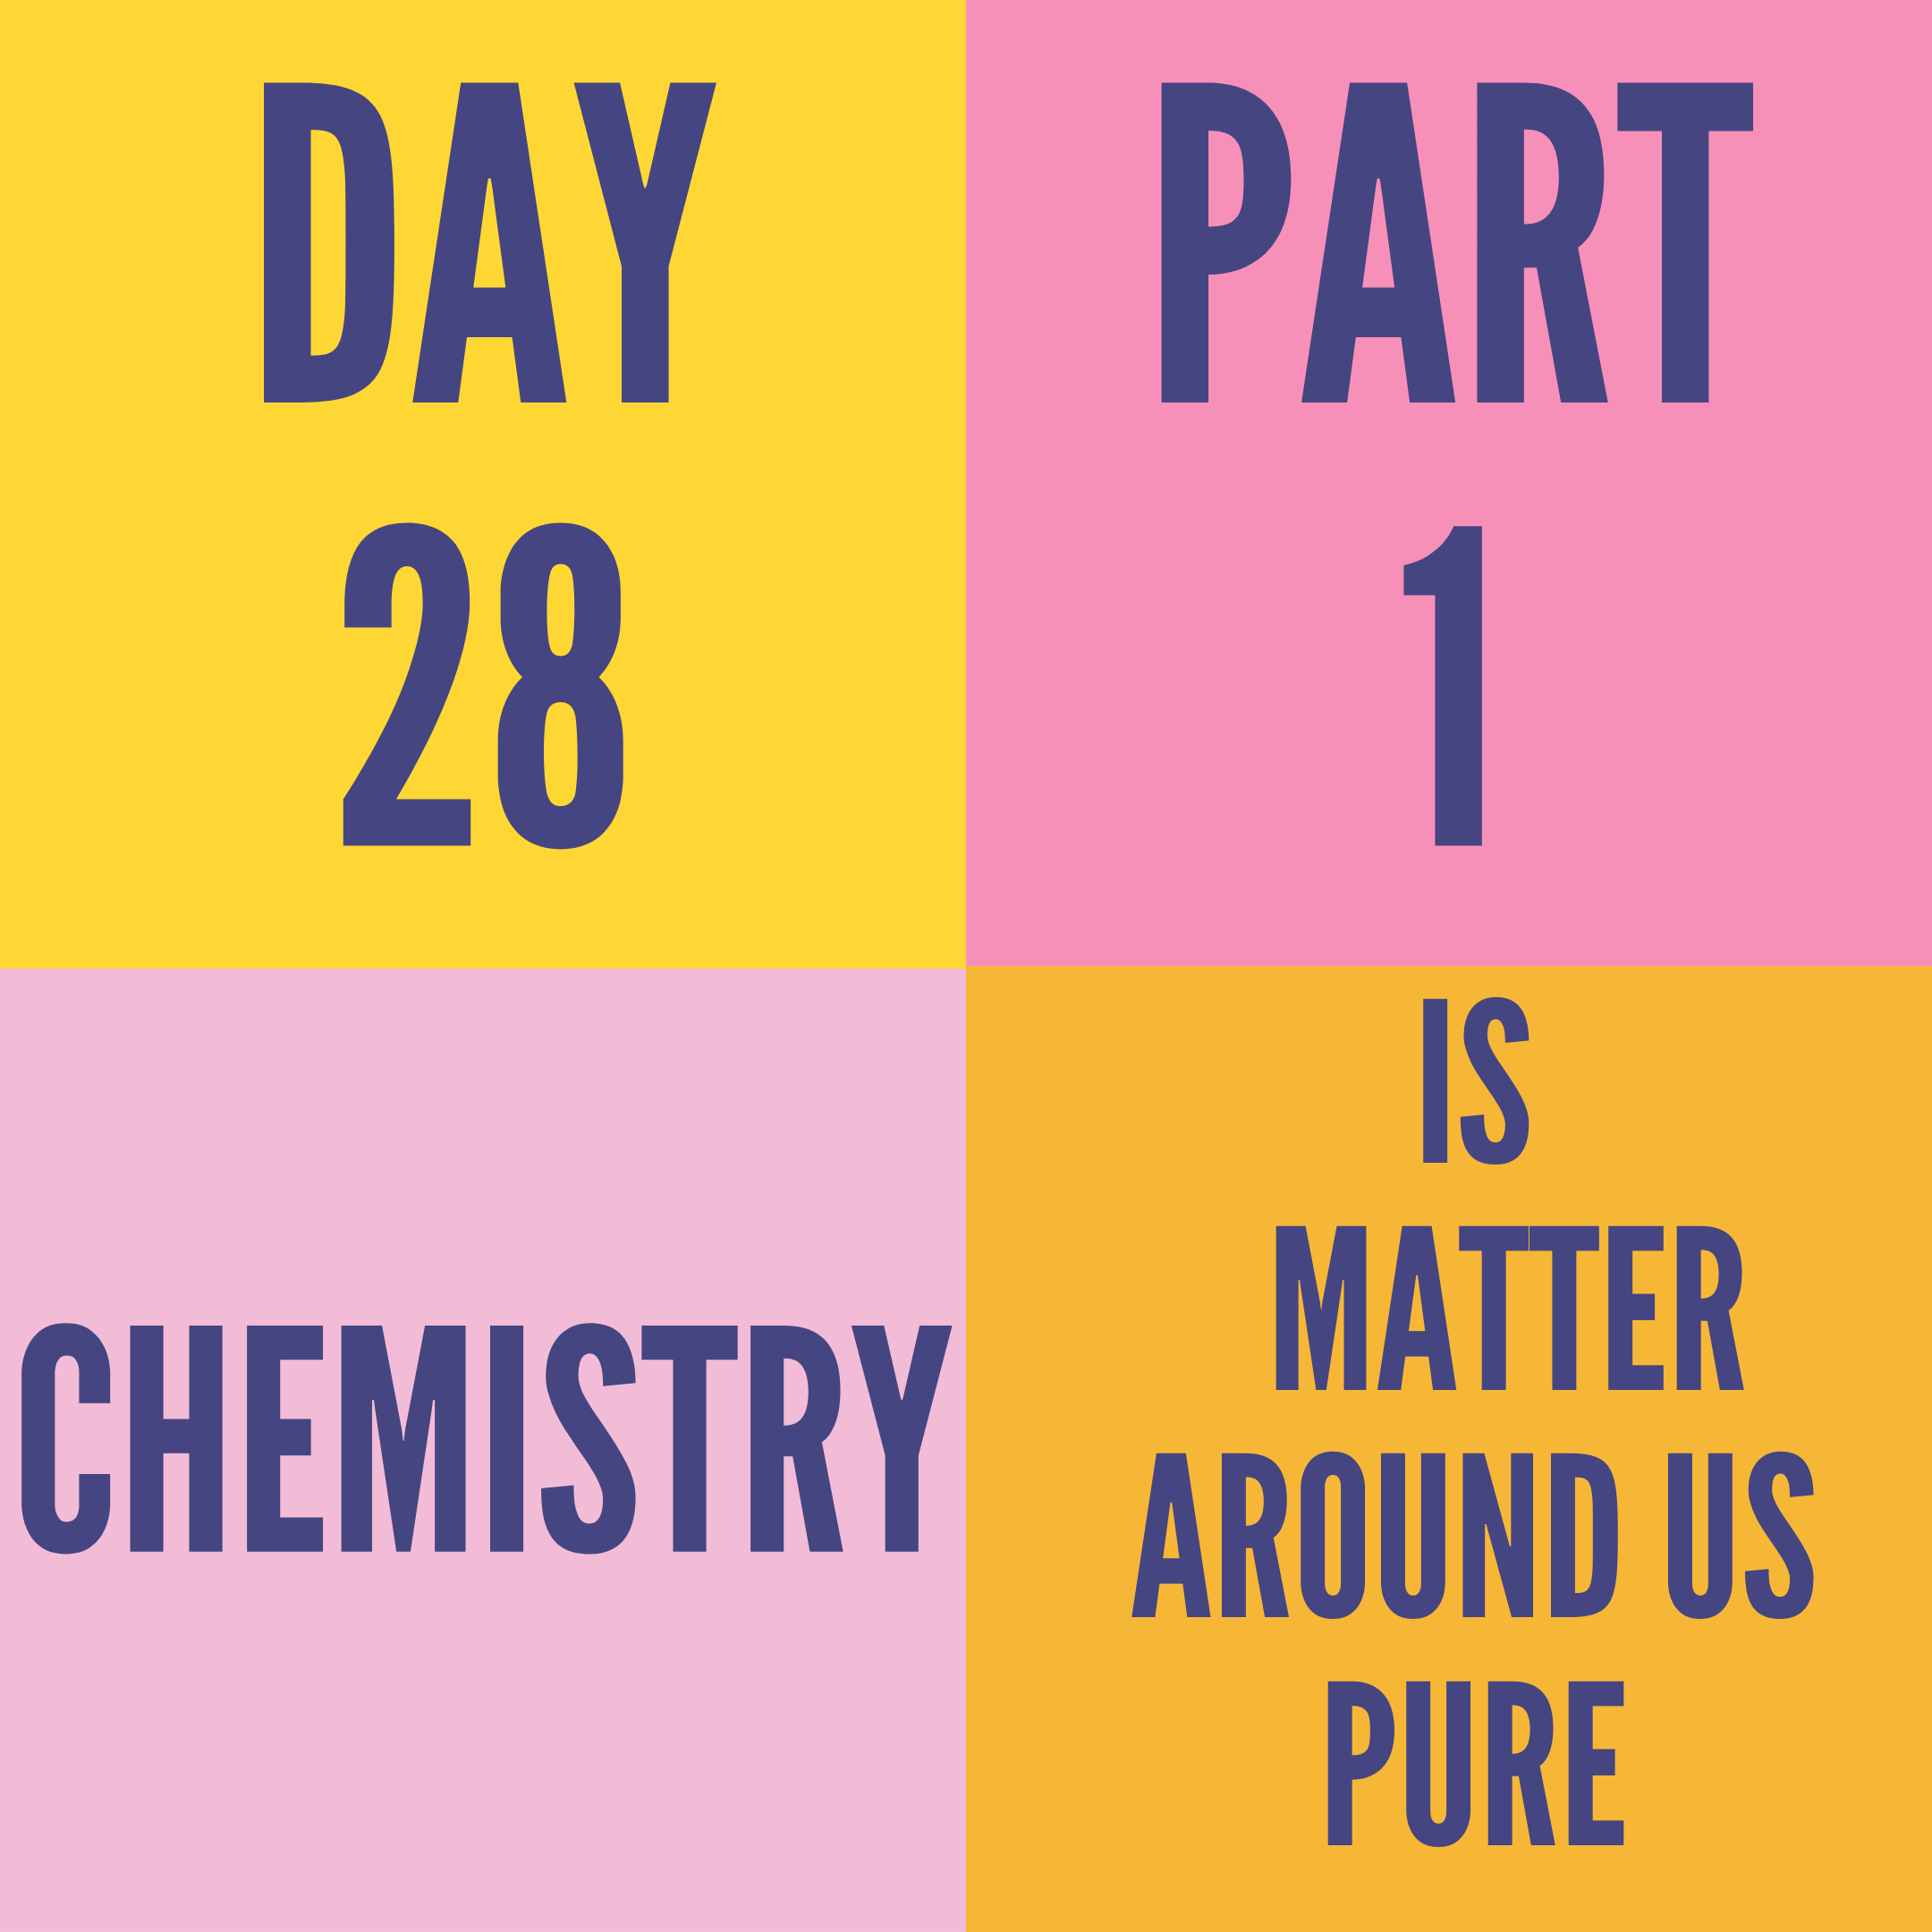 DAY-28 PART-1 IS MATTER AROUND US PURE